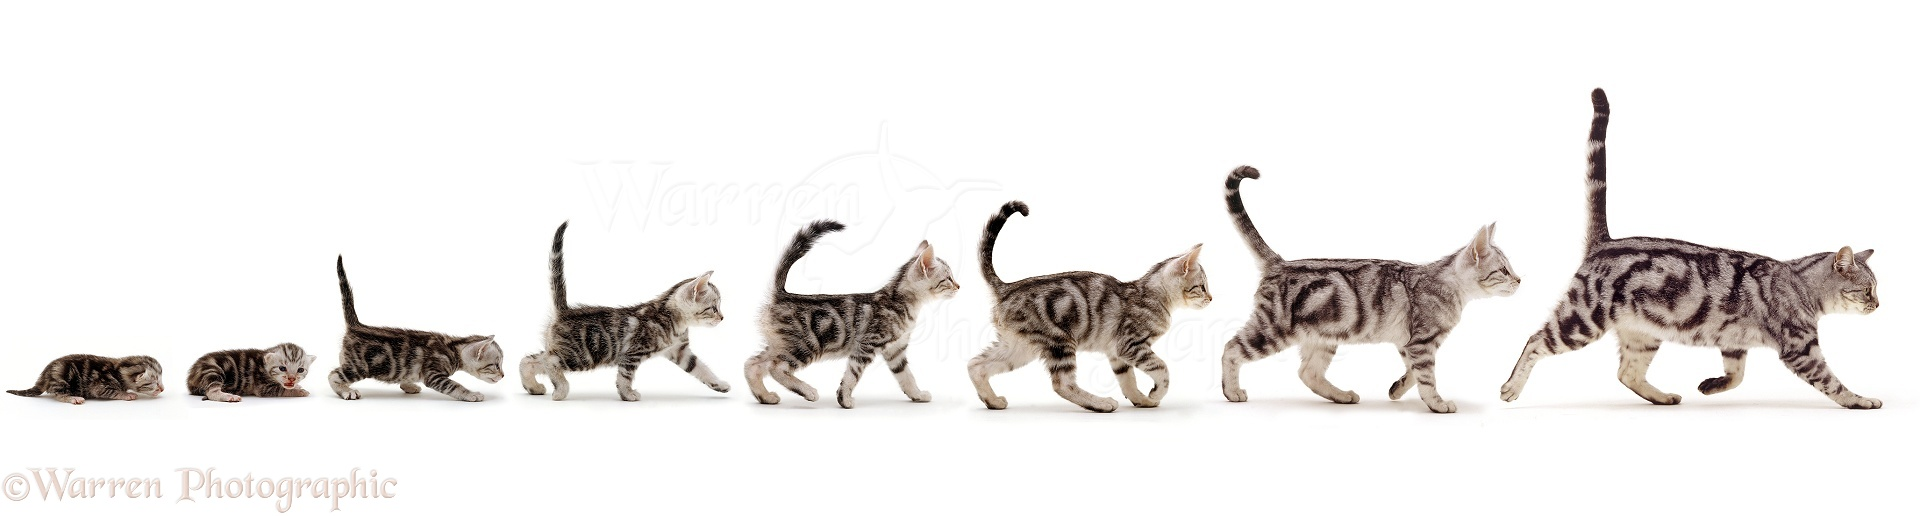 Silver tabby cat growing up sequence stages photo - WP42493